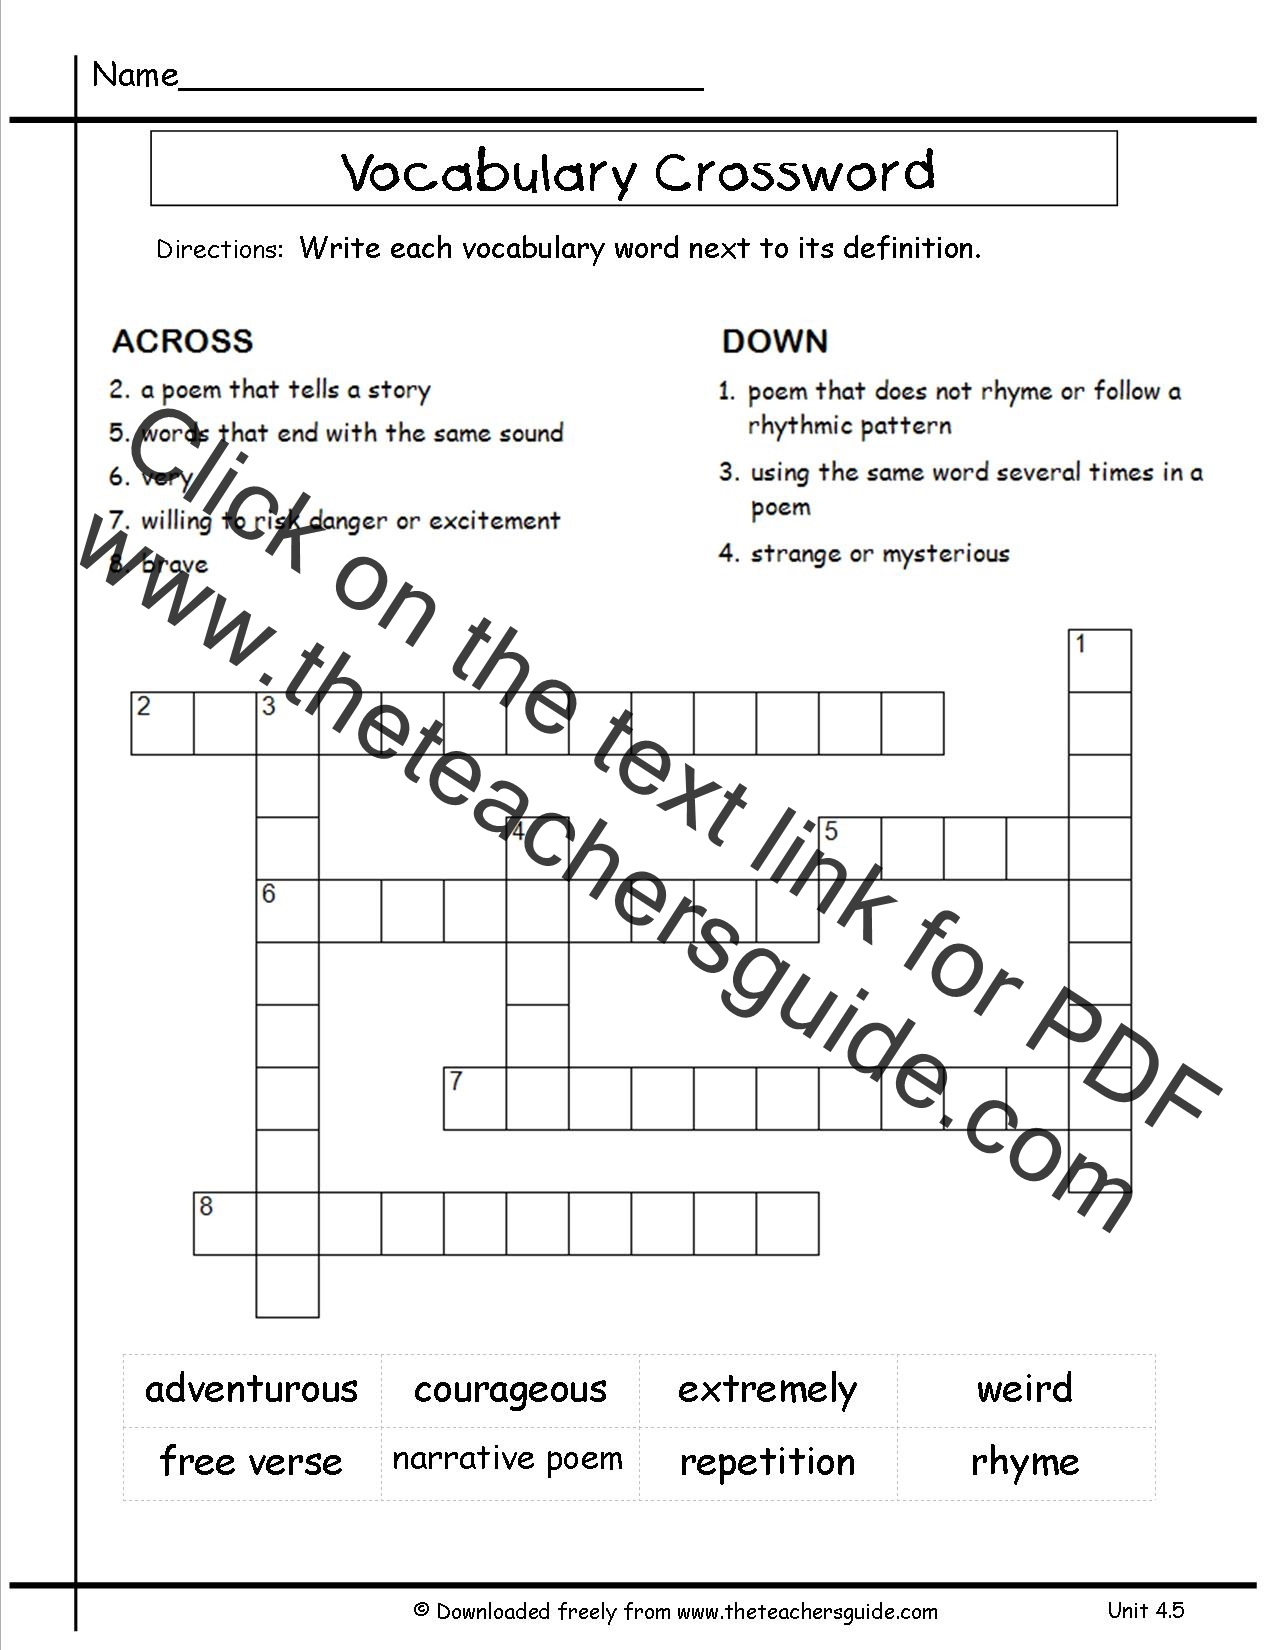 6th Grade Math Vocabulary Crossword Puzzles